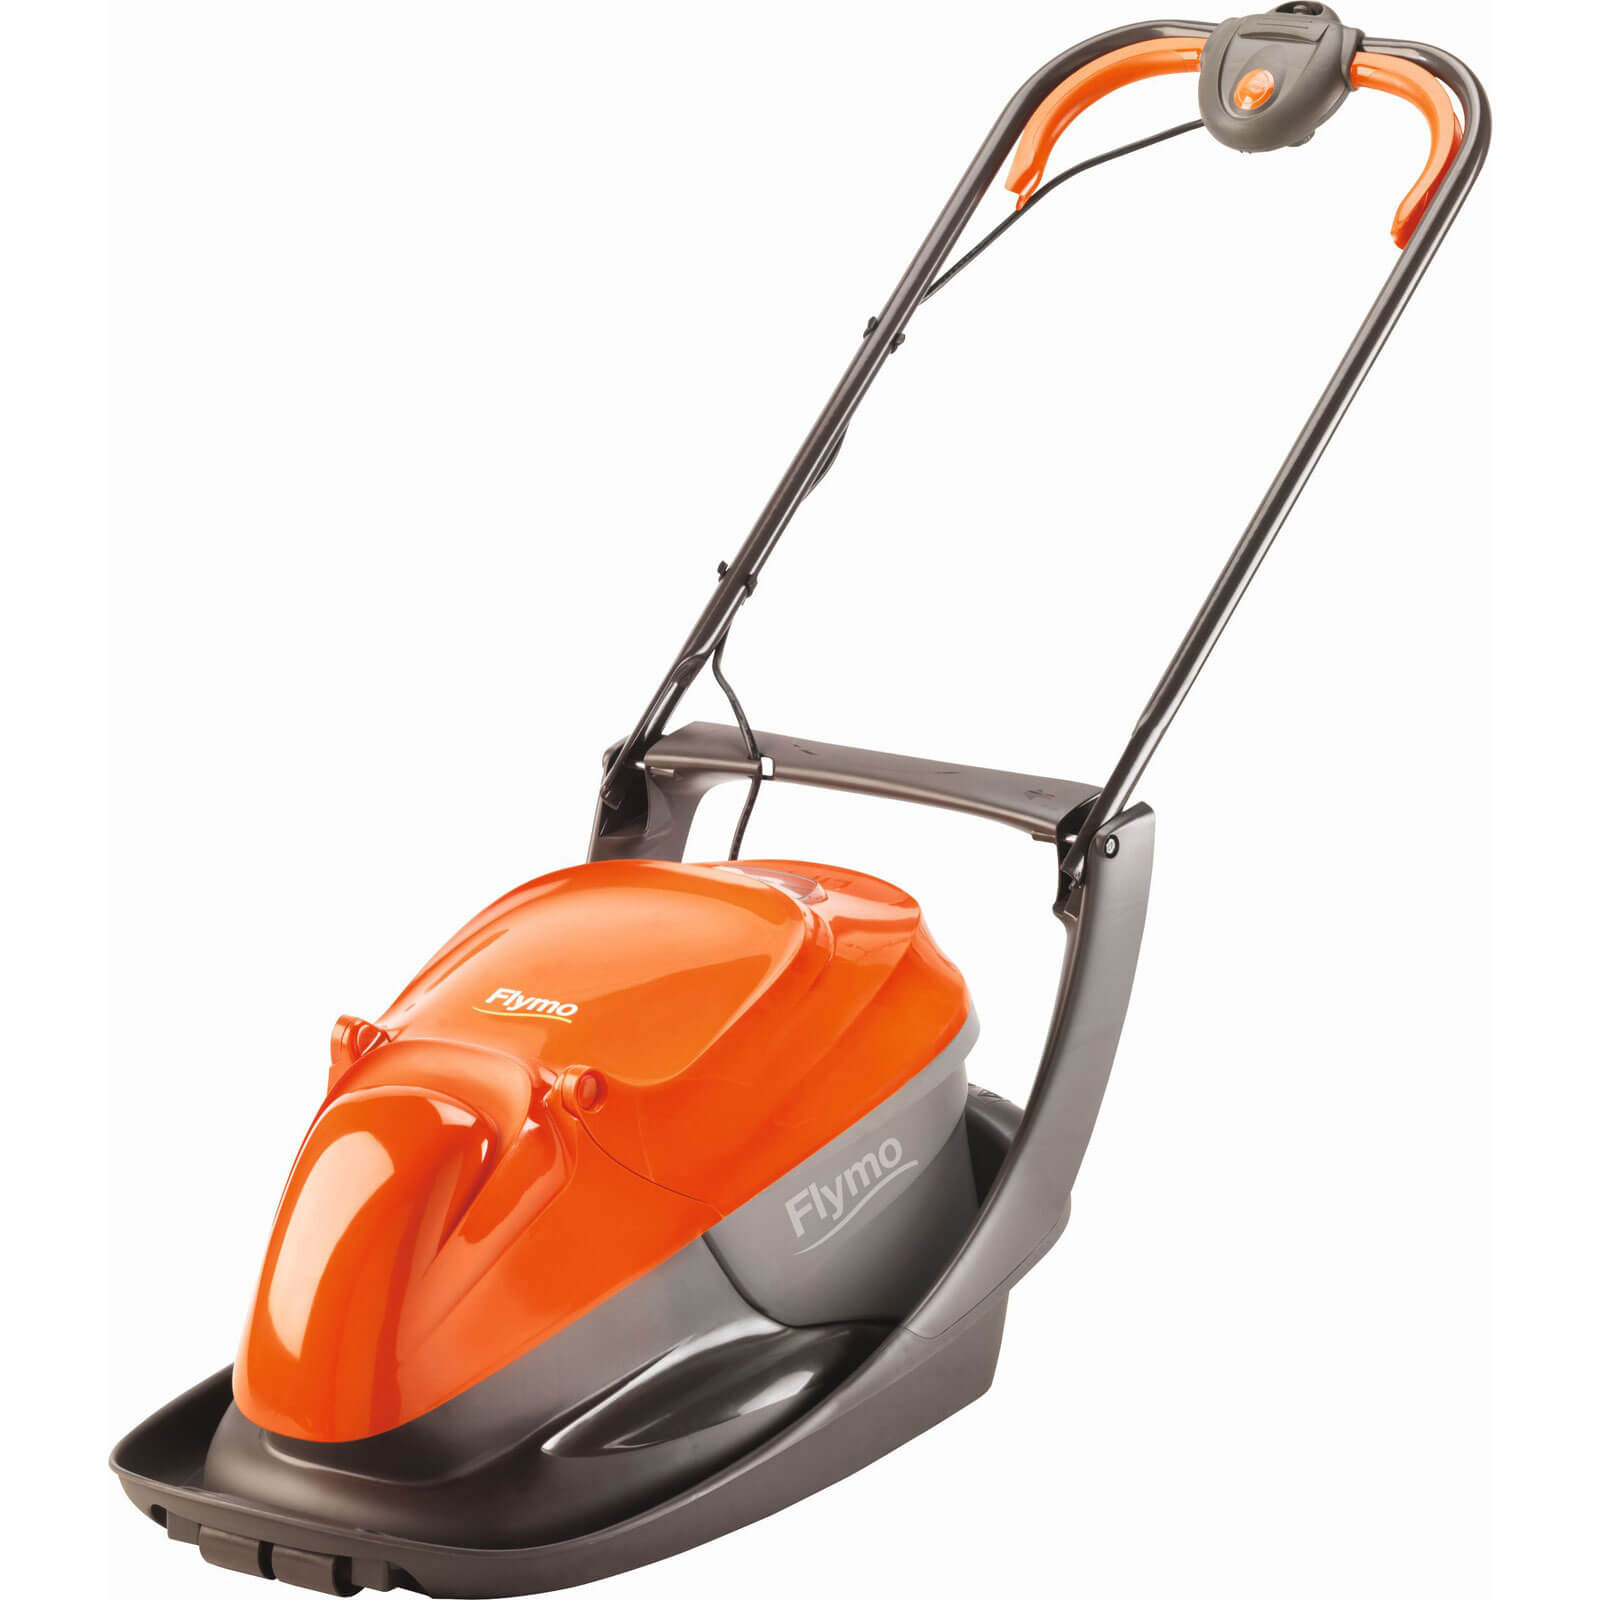 Image of Flymo EASIGLIDE 300 Hover Lawnmower 300mm 240v